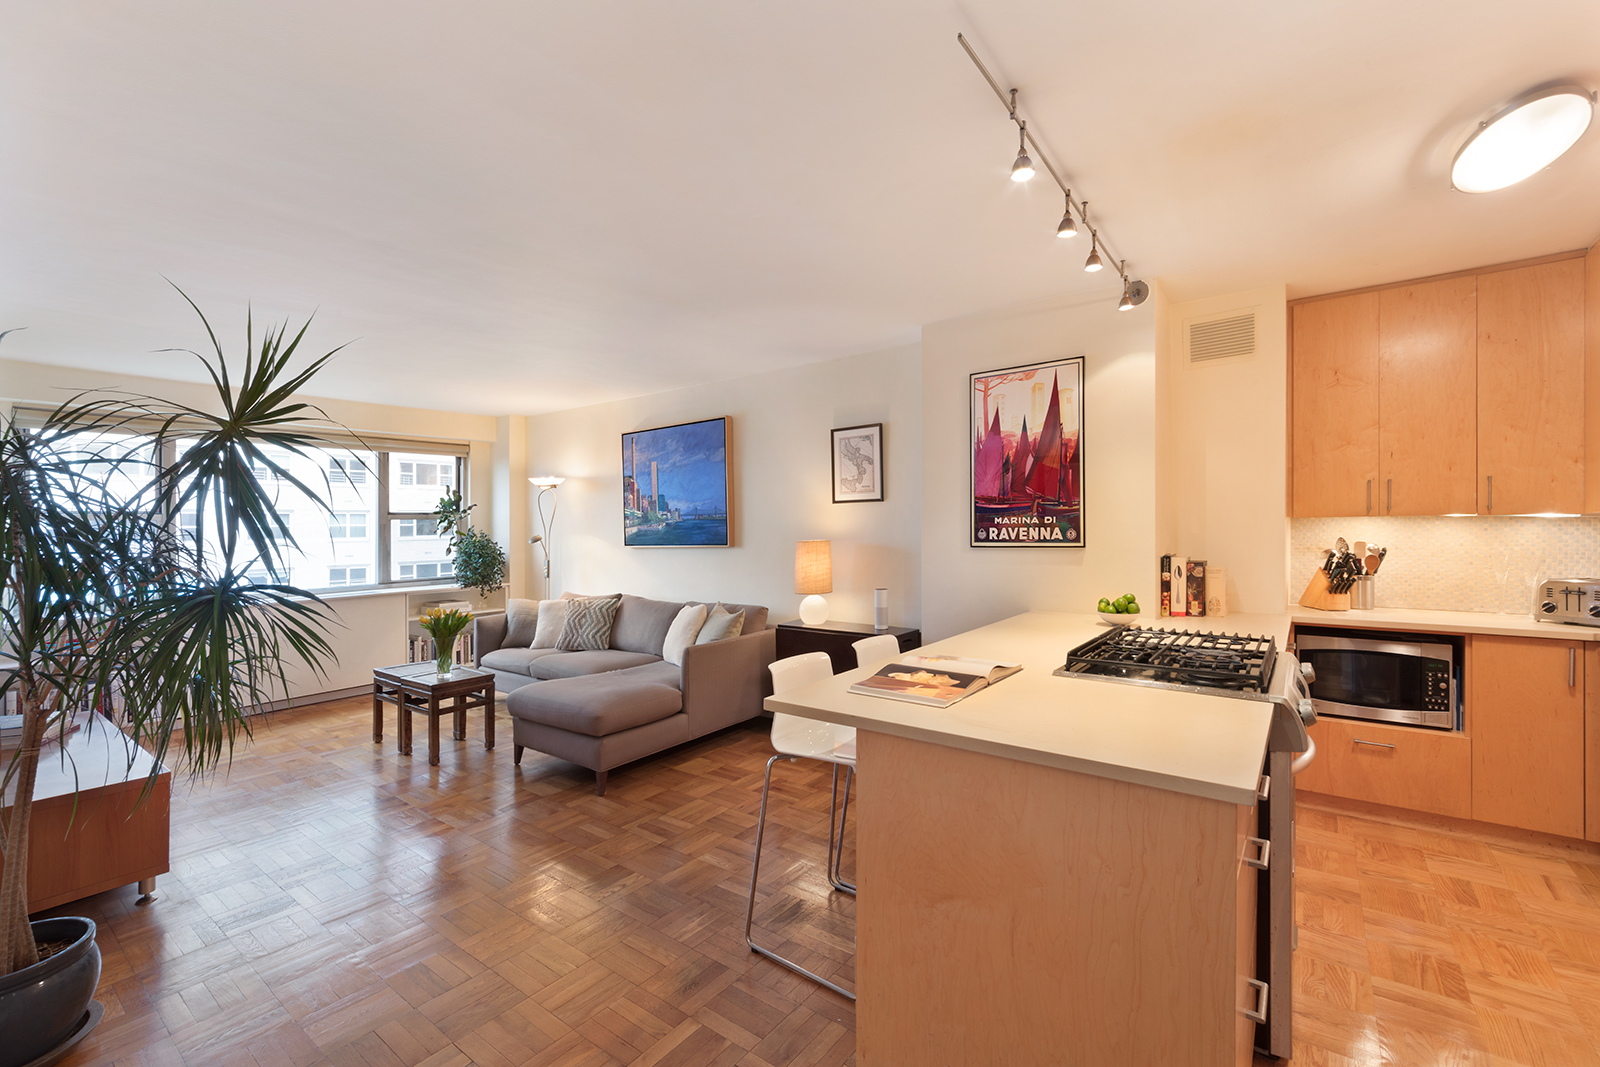 79 West 12th St. 8E. New York. NY 10011 | CORE Real Estate